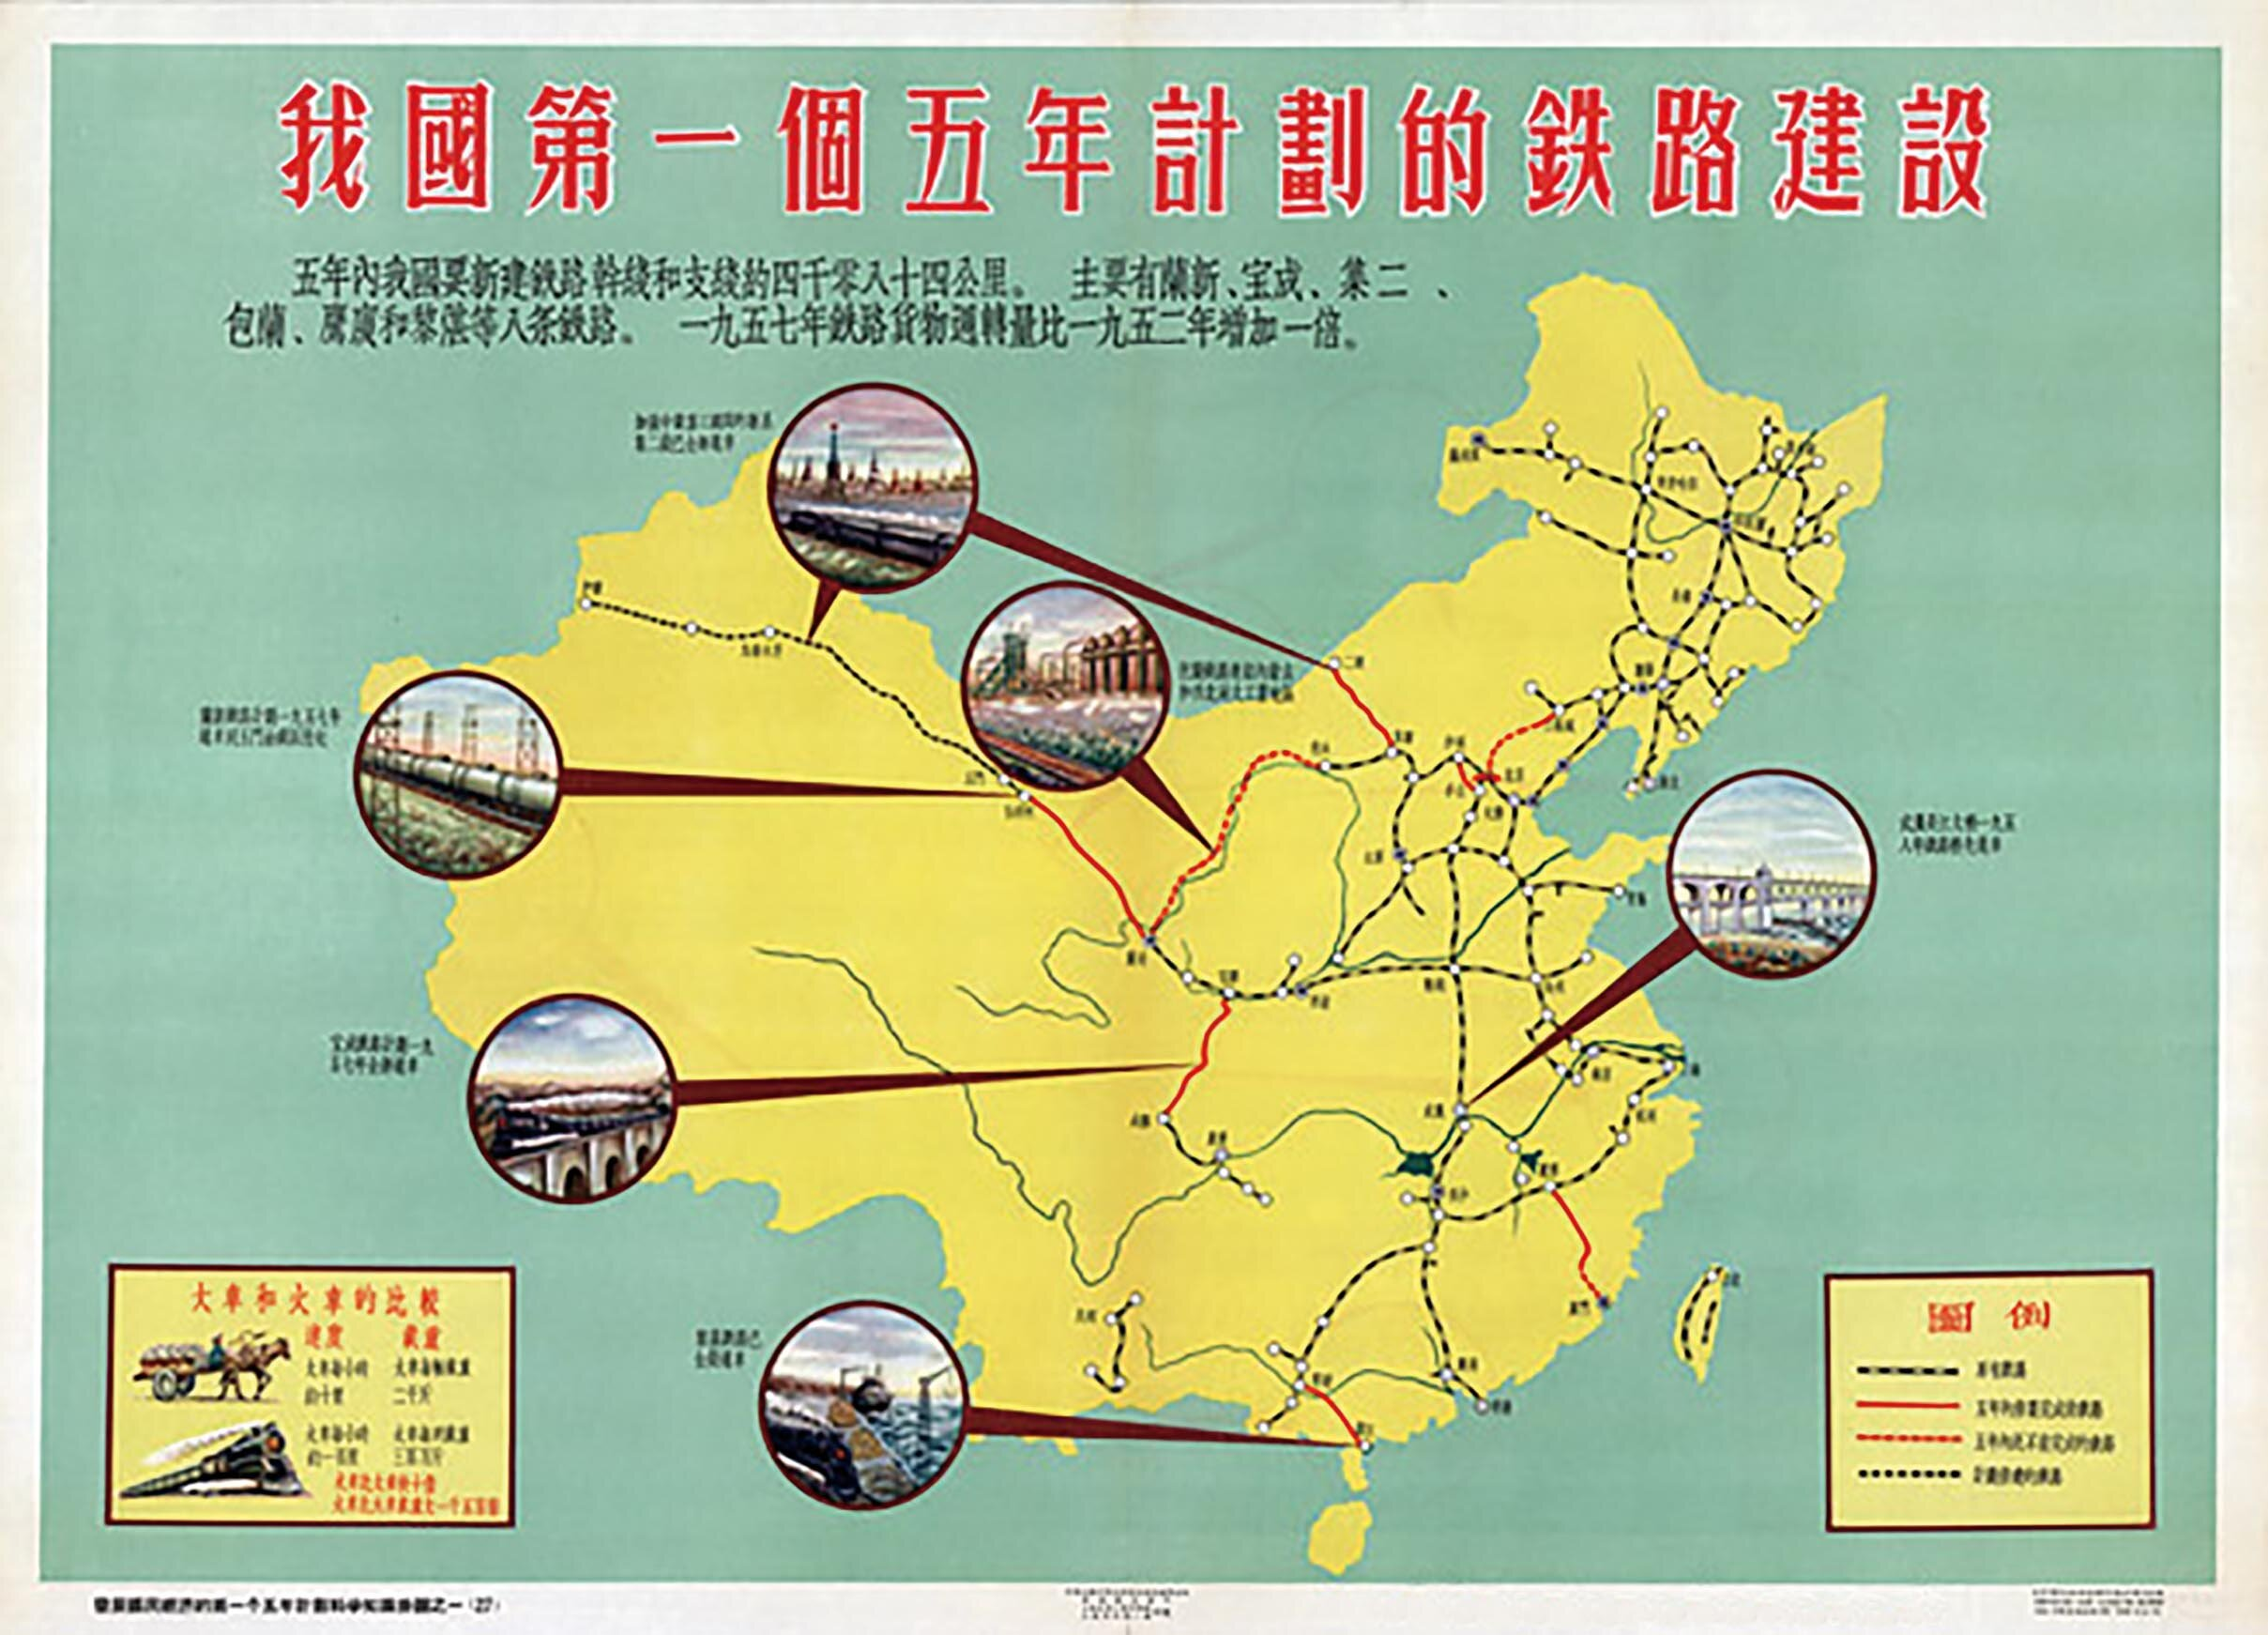 我國第一個五年計劃的鐵路建設/Railroad construction under the First Five Year Plan of our nation, 1956